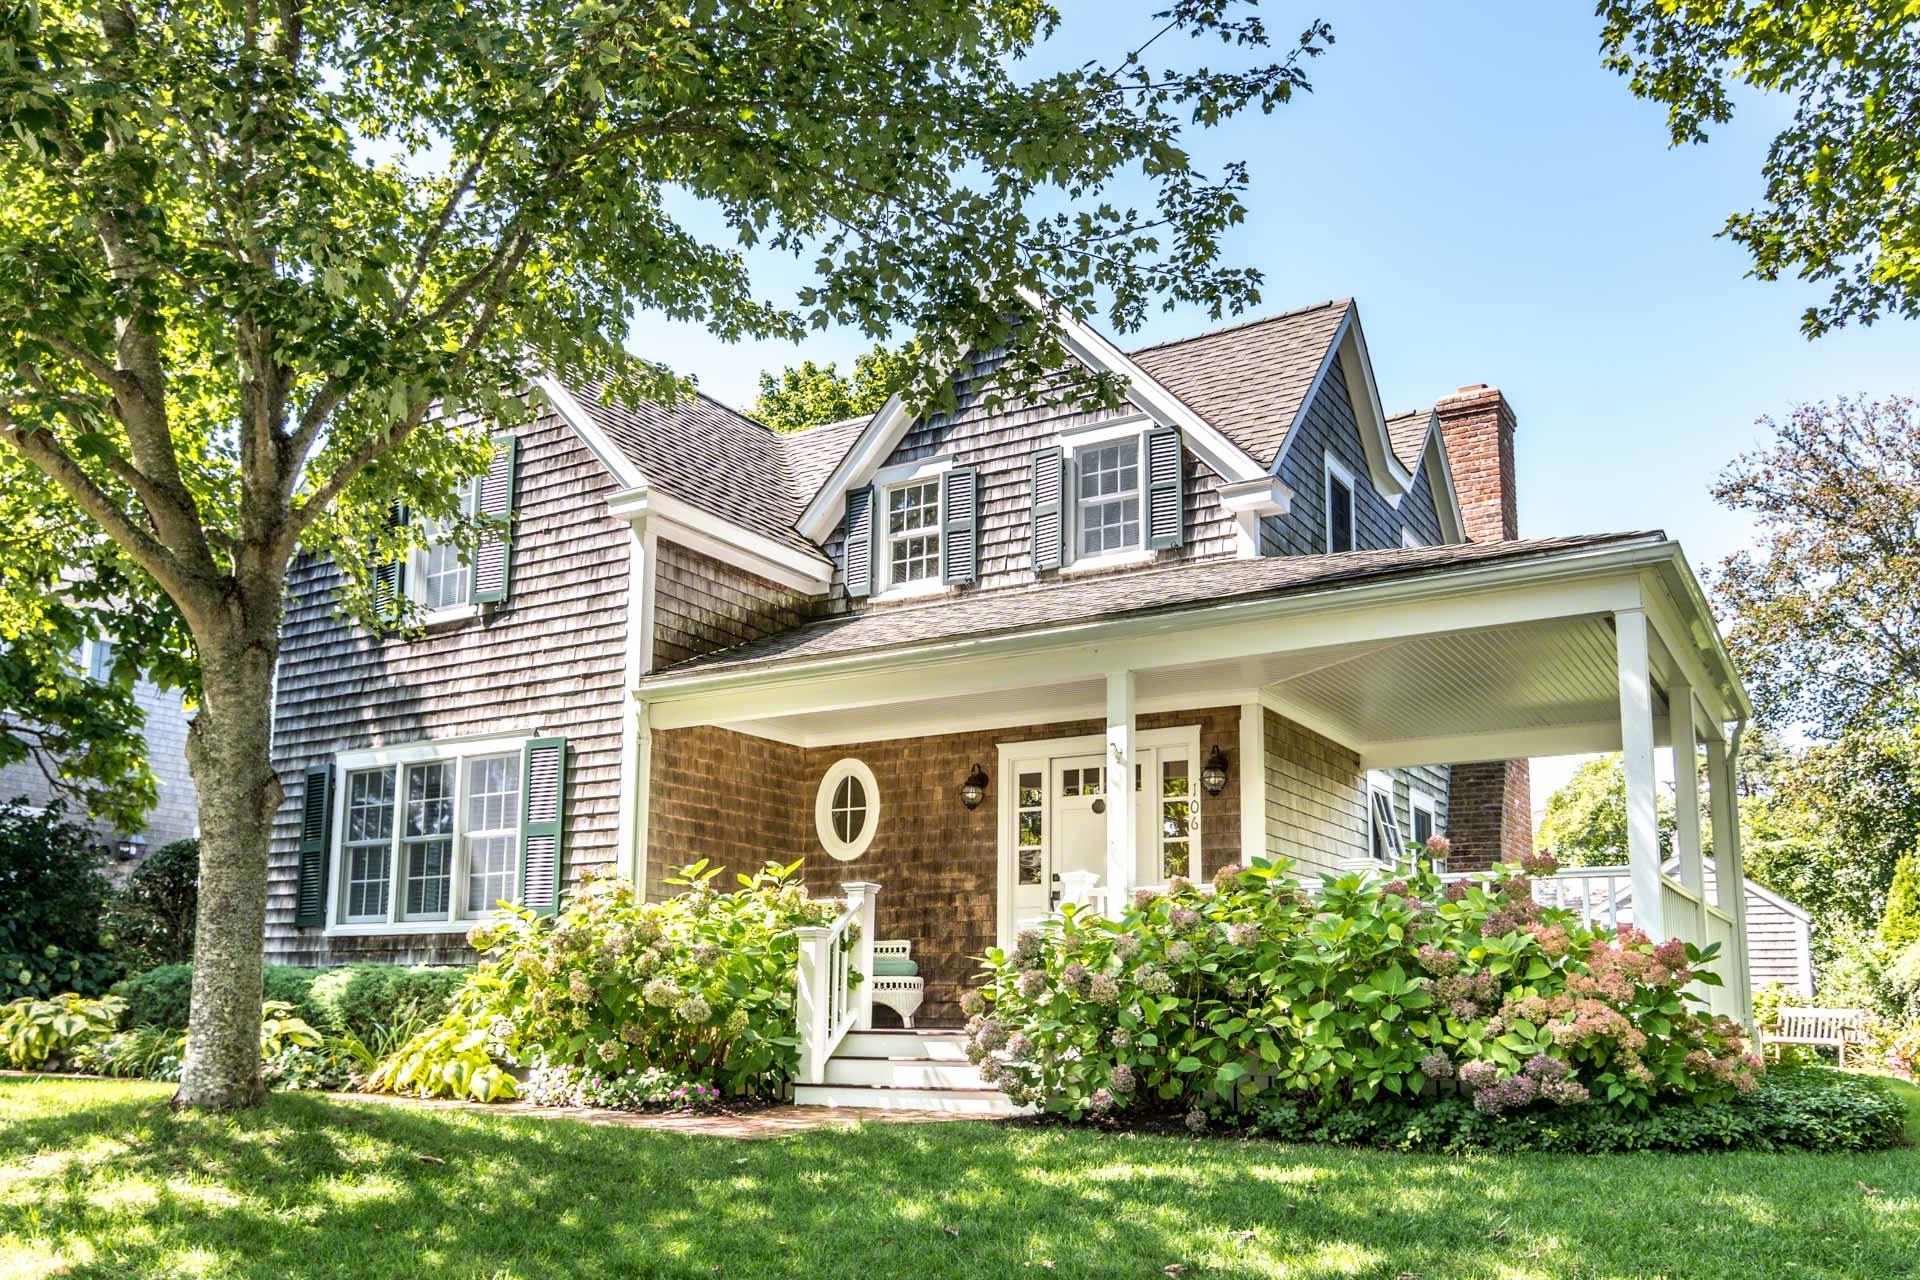 106 South Summer Street, Edgartown Unit: Newly Listed